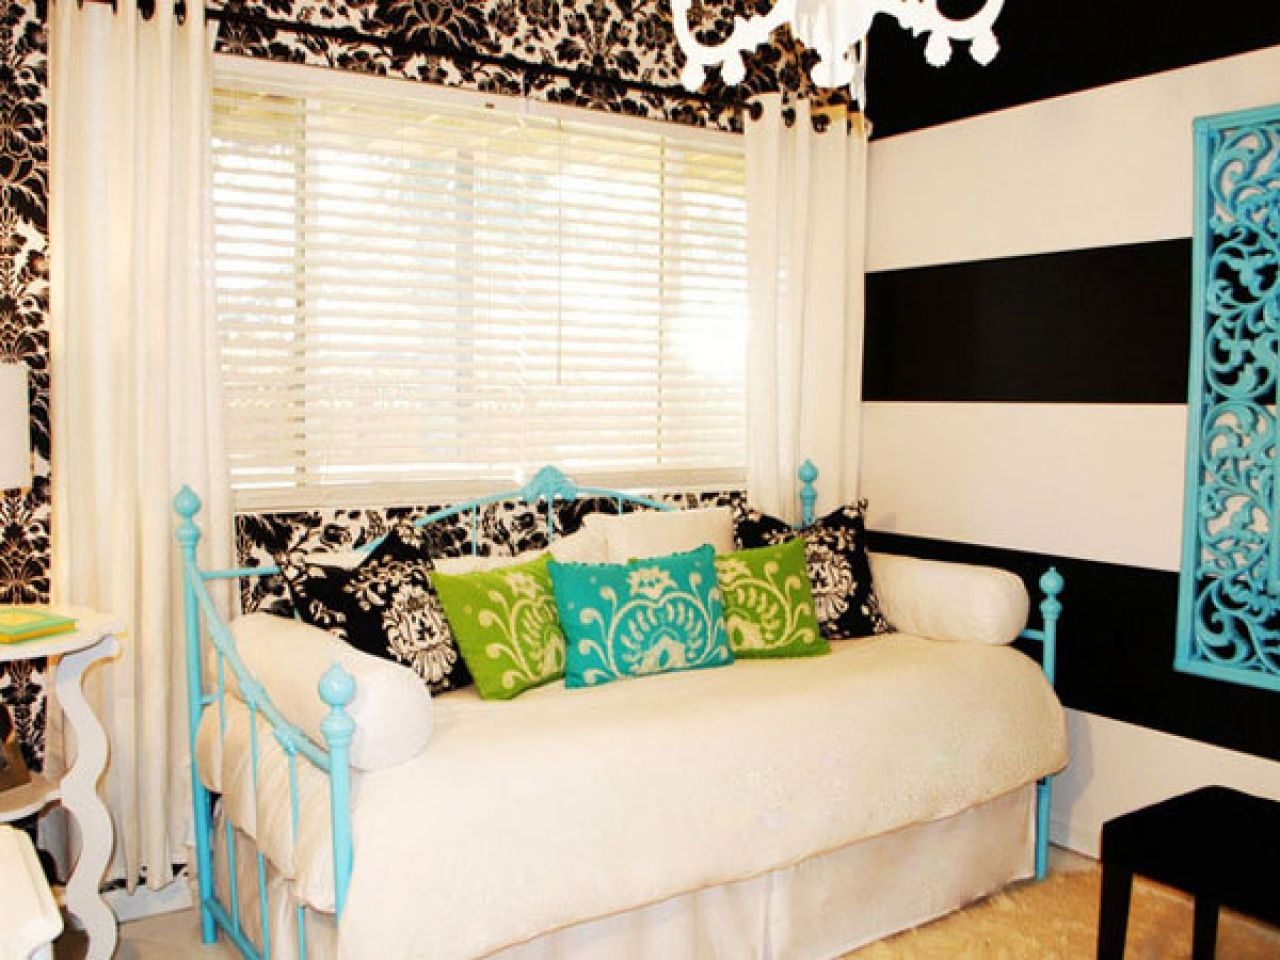 Bedroom color design for girls - Blue And White Bedroom For Teenage Girls Modern Decoration 17 On